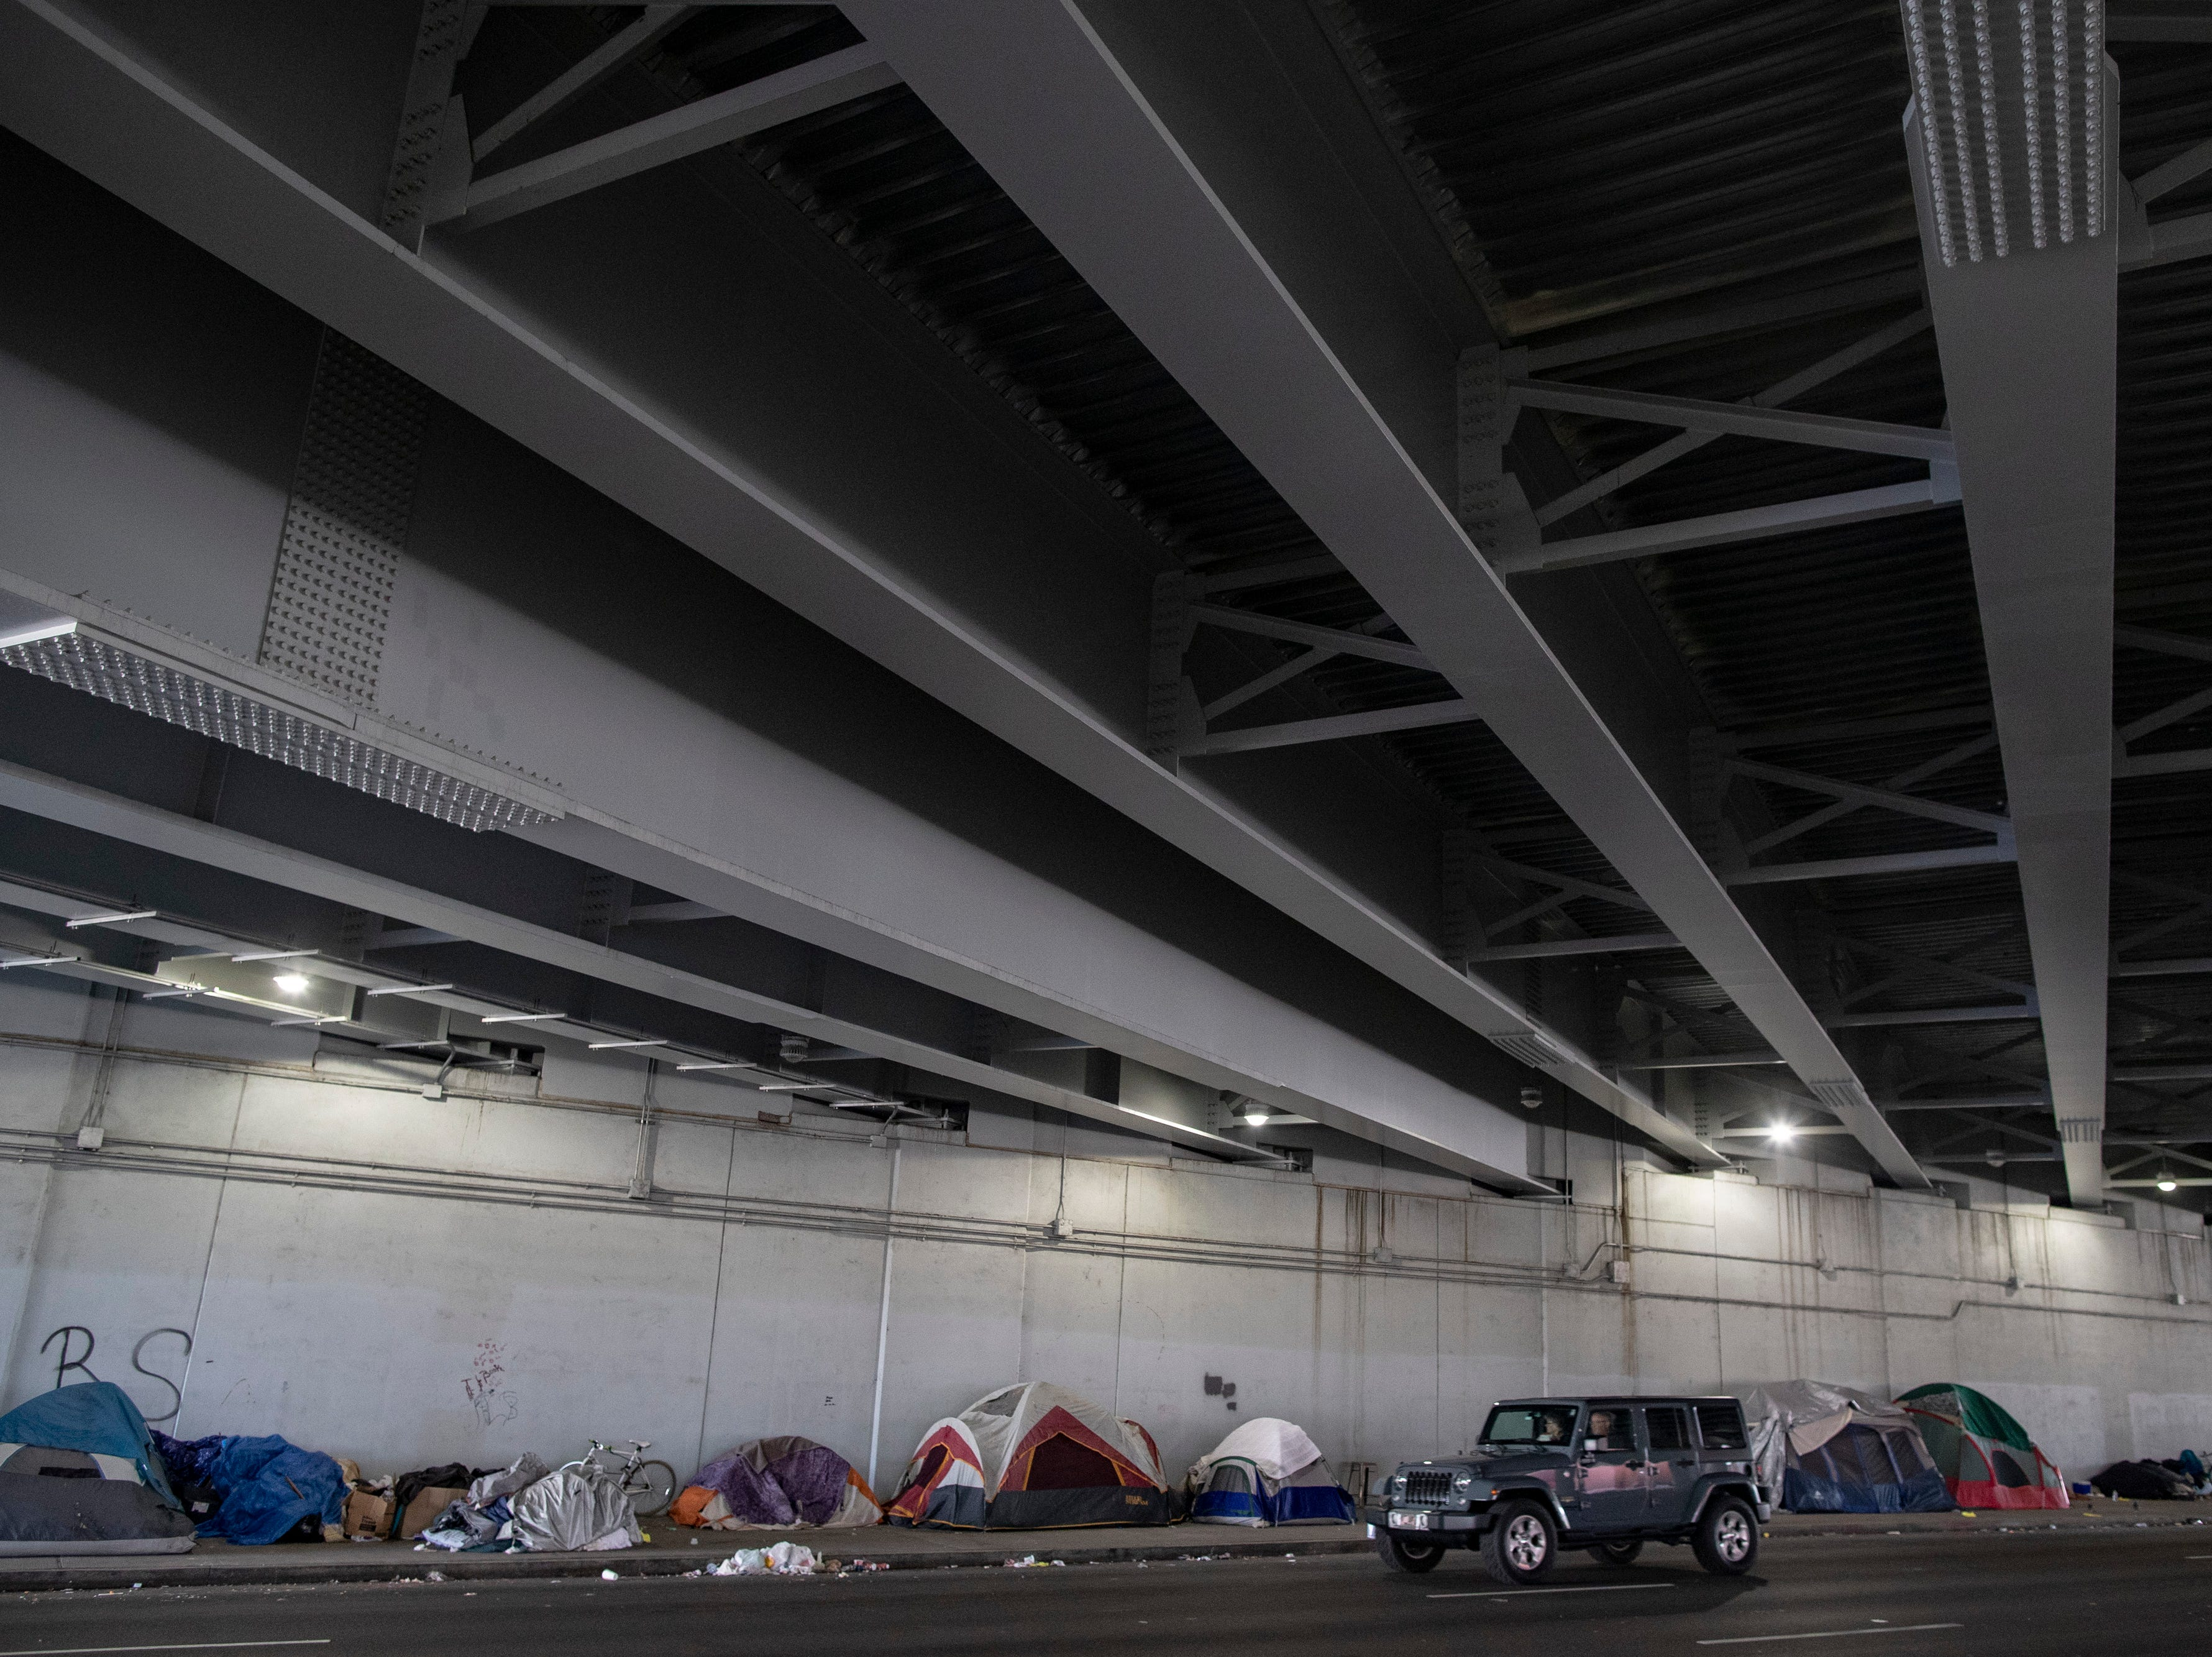 A motorist passes by the homeless camp area under the bypasses along East Jefferson Street and Jackson Street in downtown Louisville. March 18, 2019